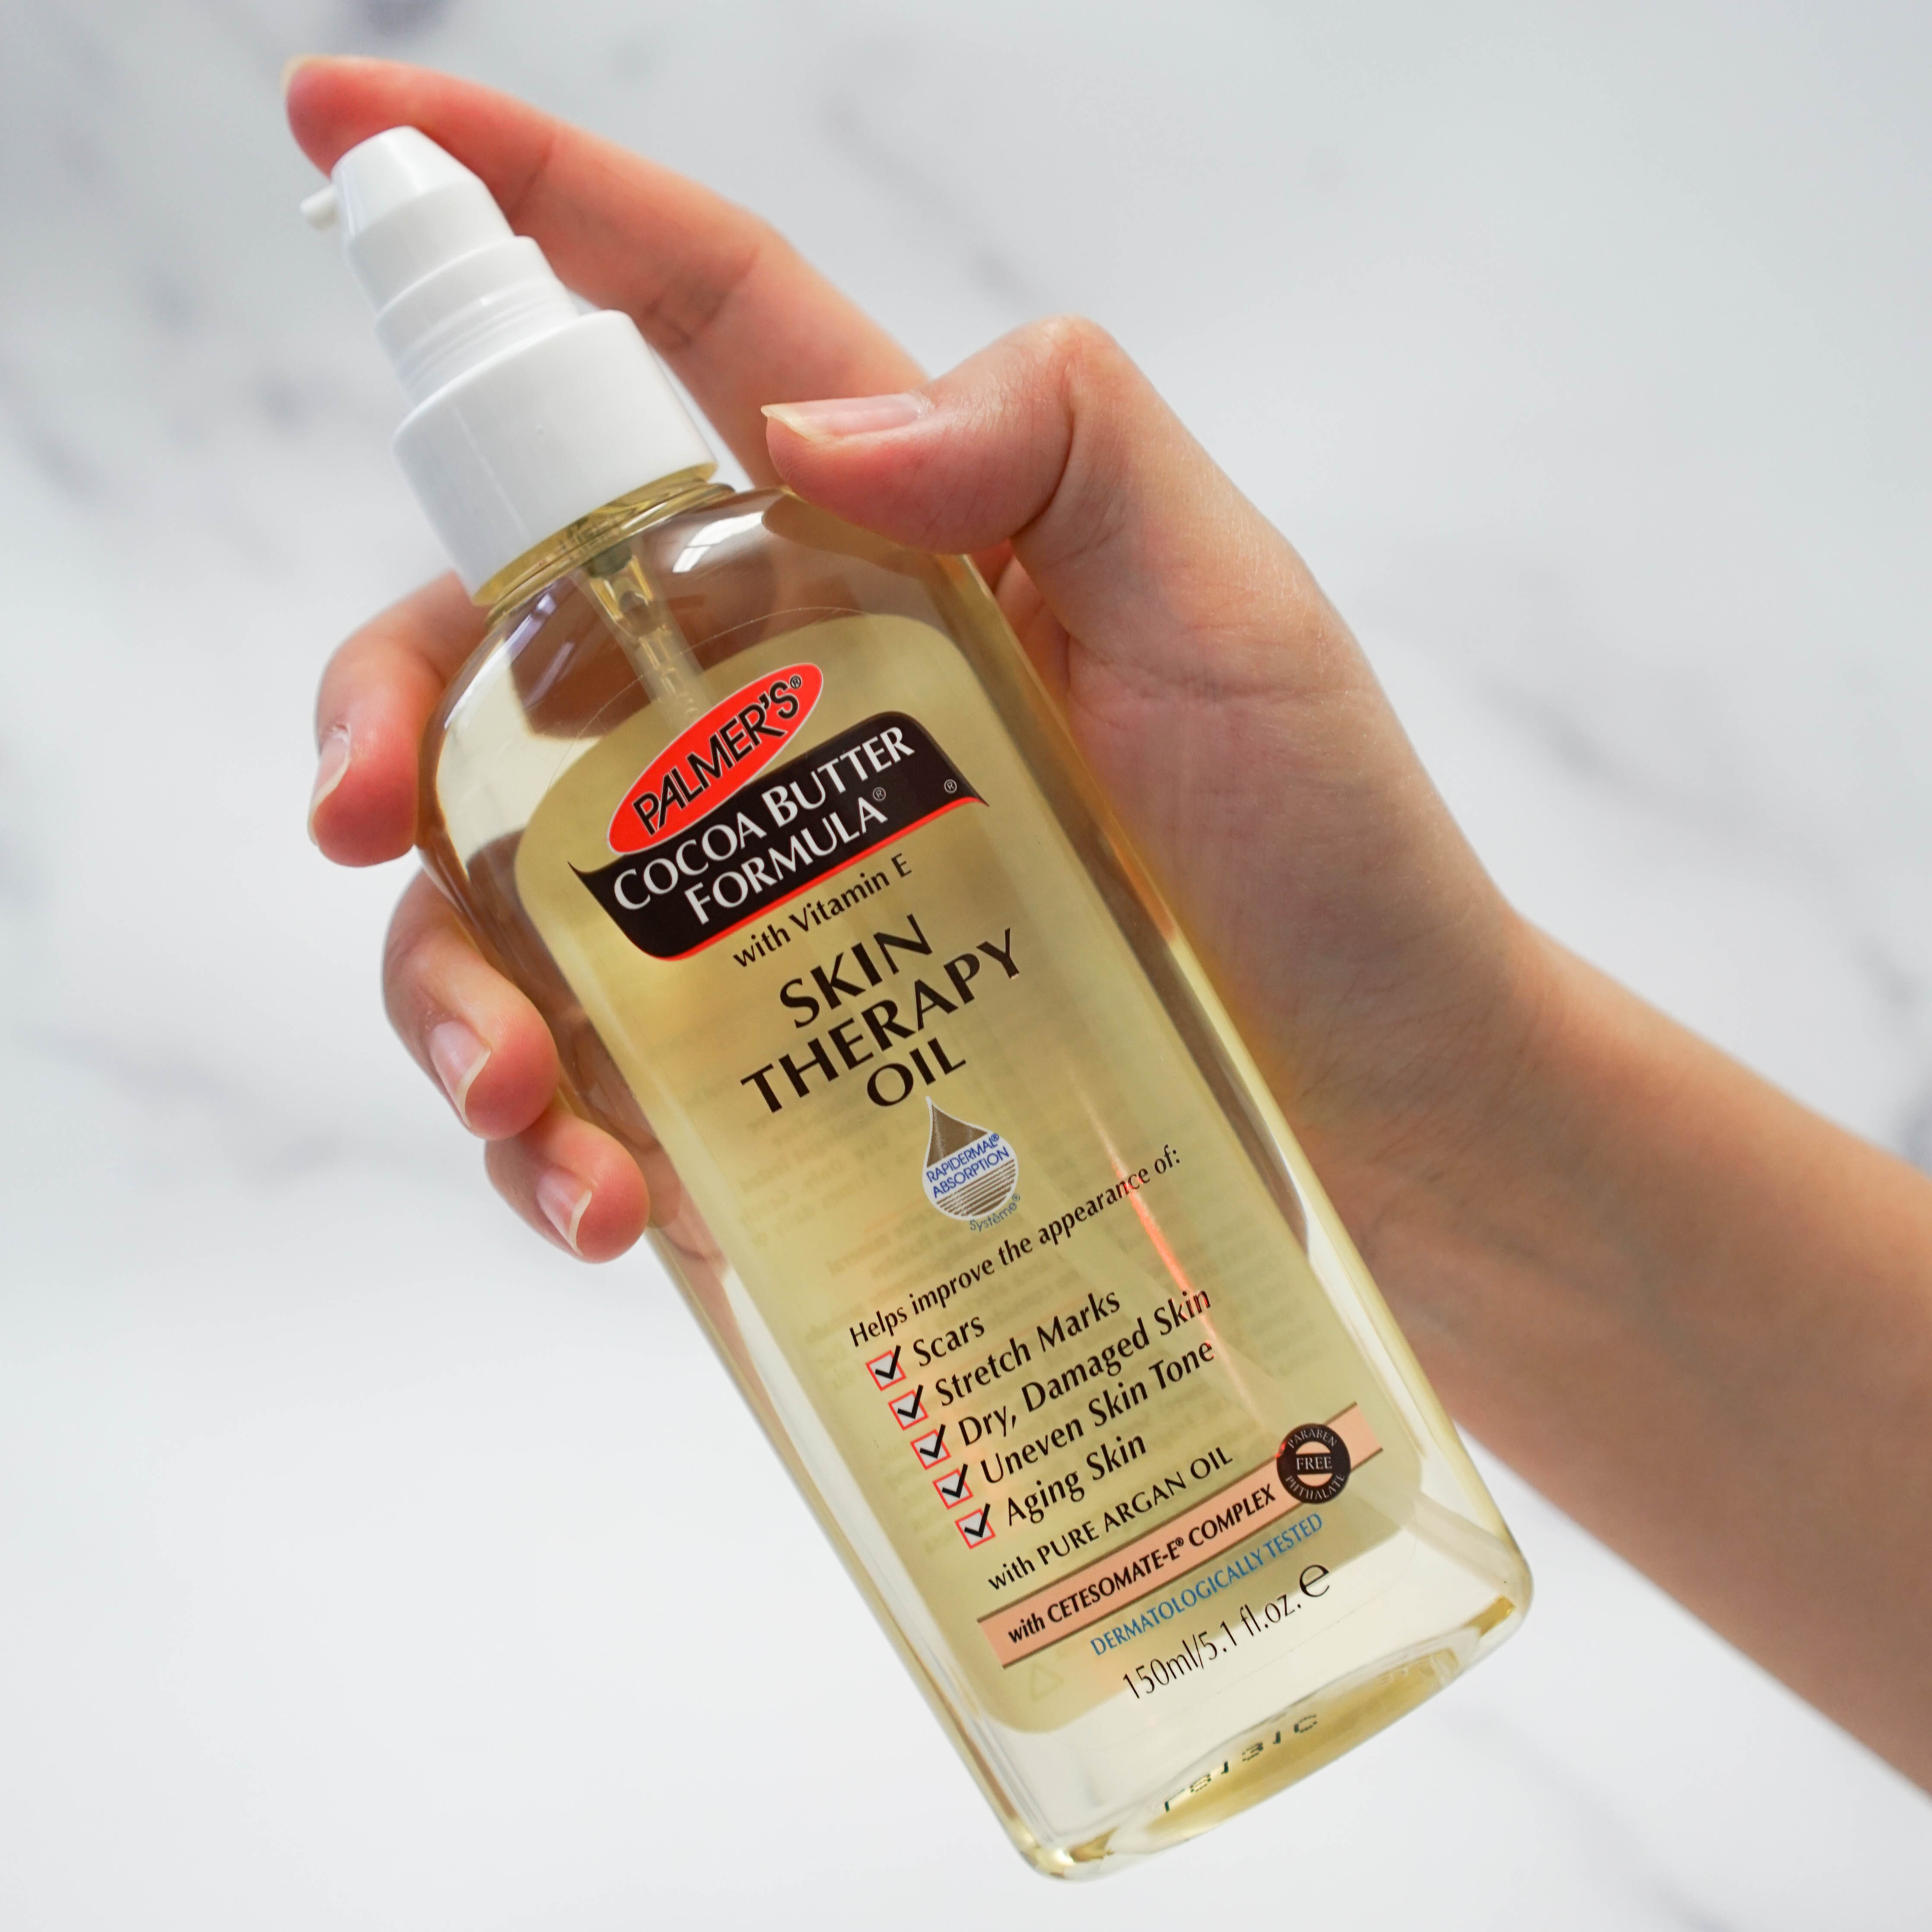 Winter skin care tips using Palmer's Cocoa Butter Skin Therapy Oil